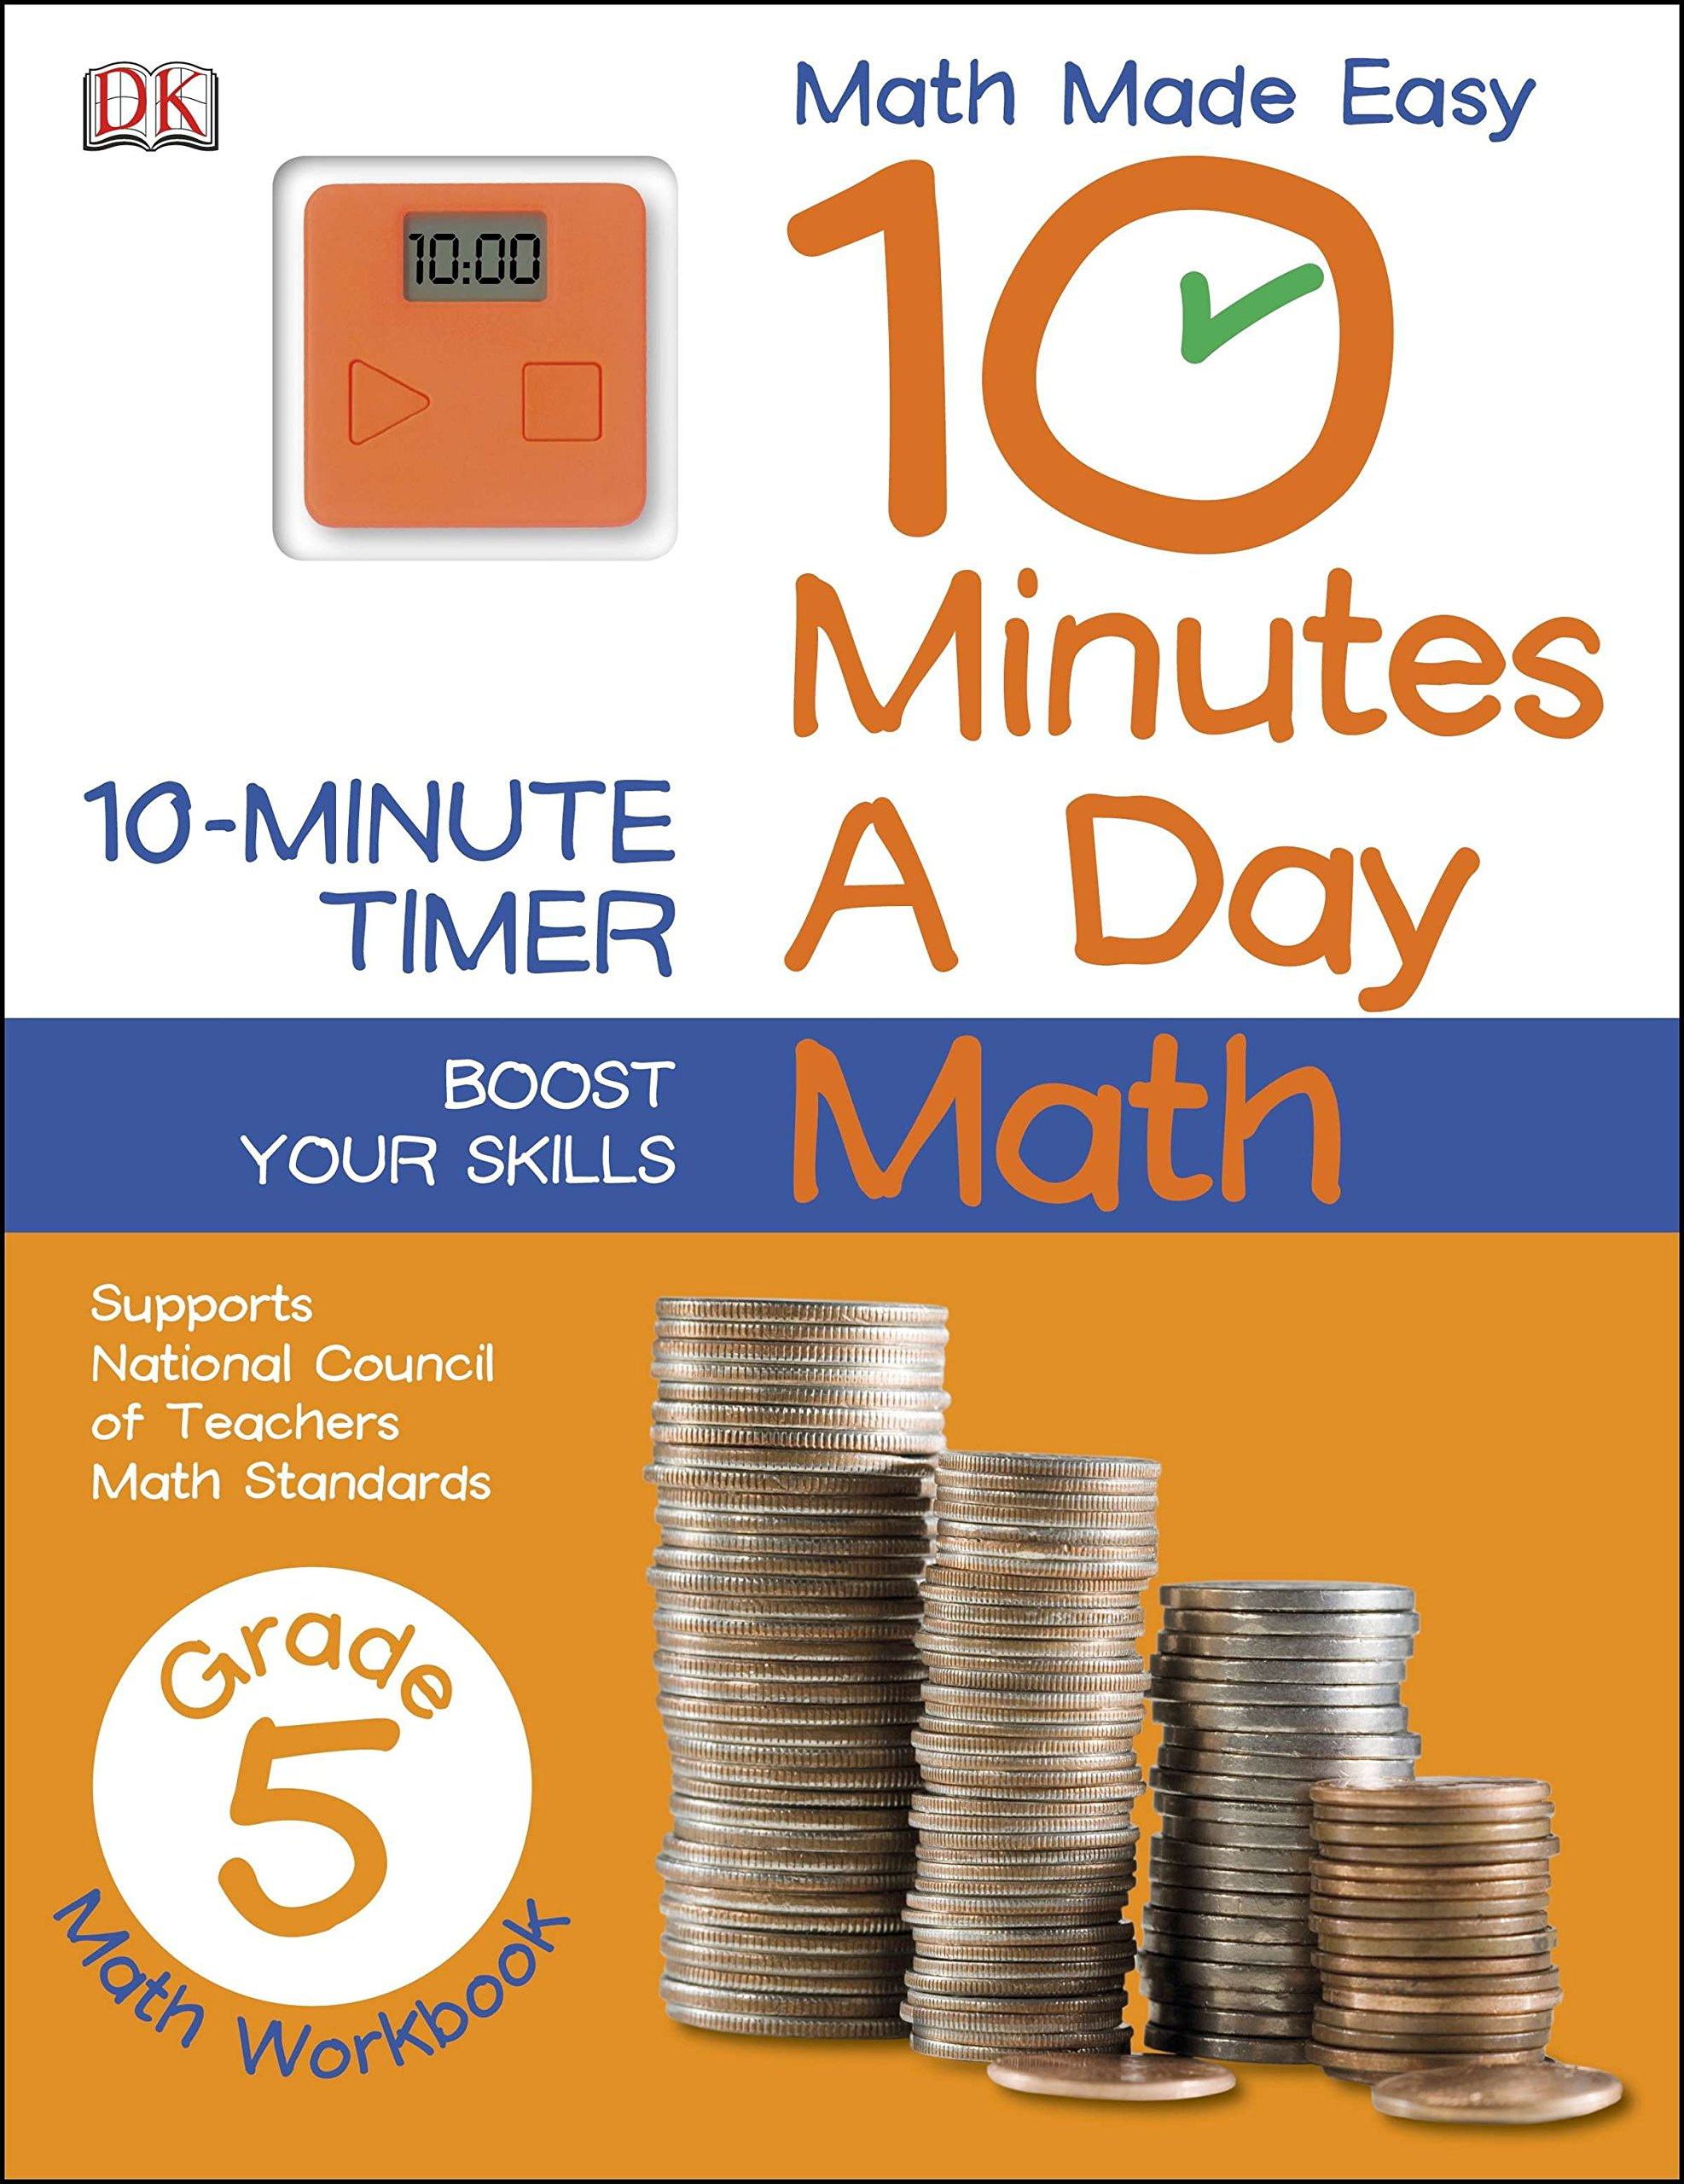 10 Minutes a Day: Math, Fifth Grade (Math Made Easy): DK: 9781465402301:  Amazon.com: Books